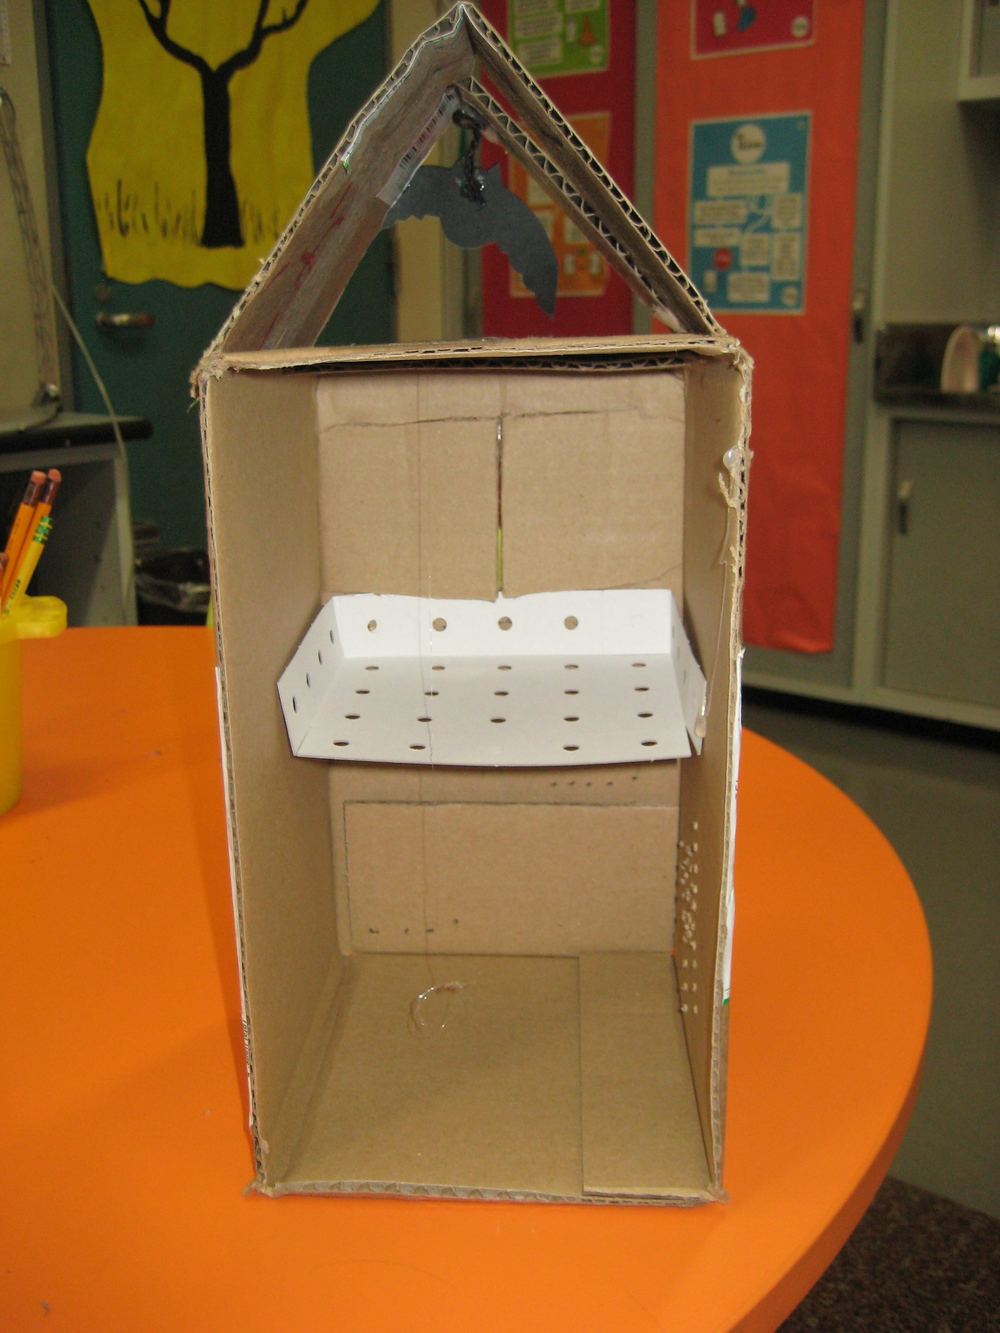 A teacher model of a design project